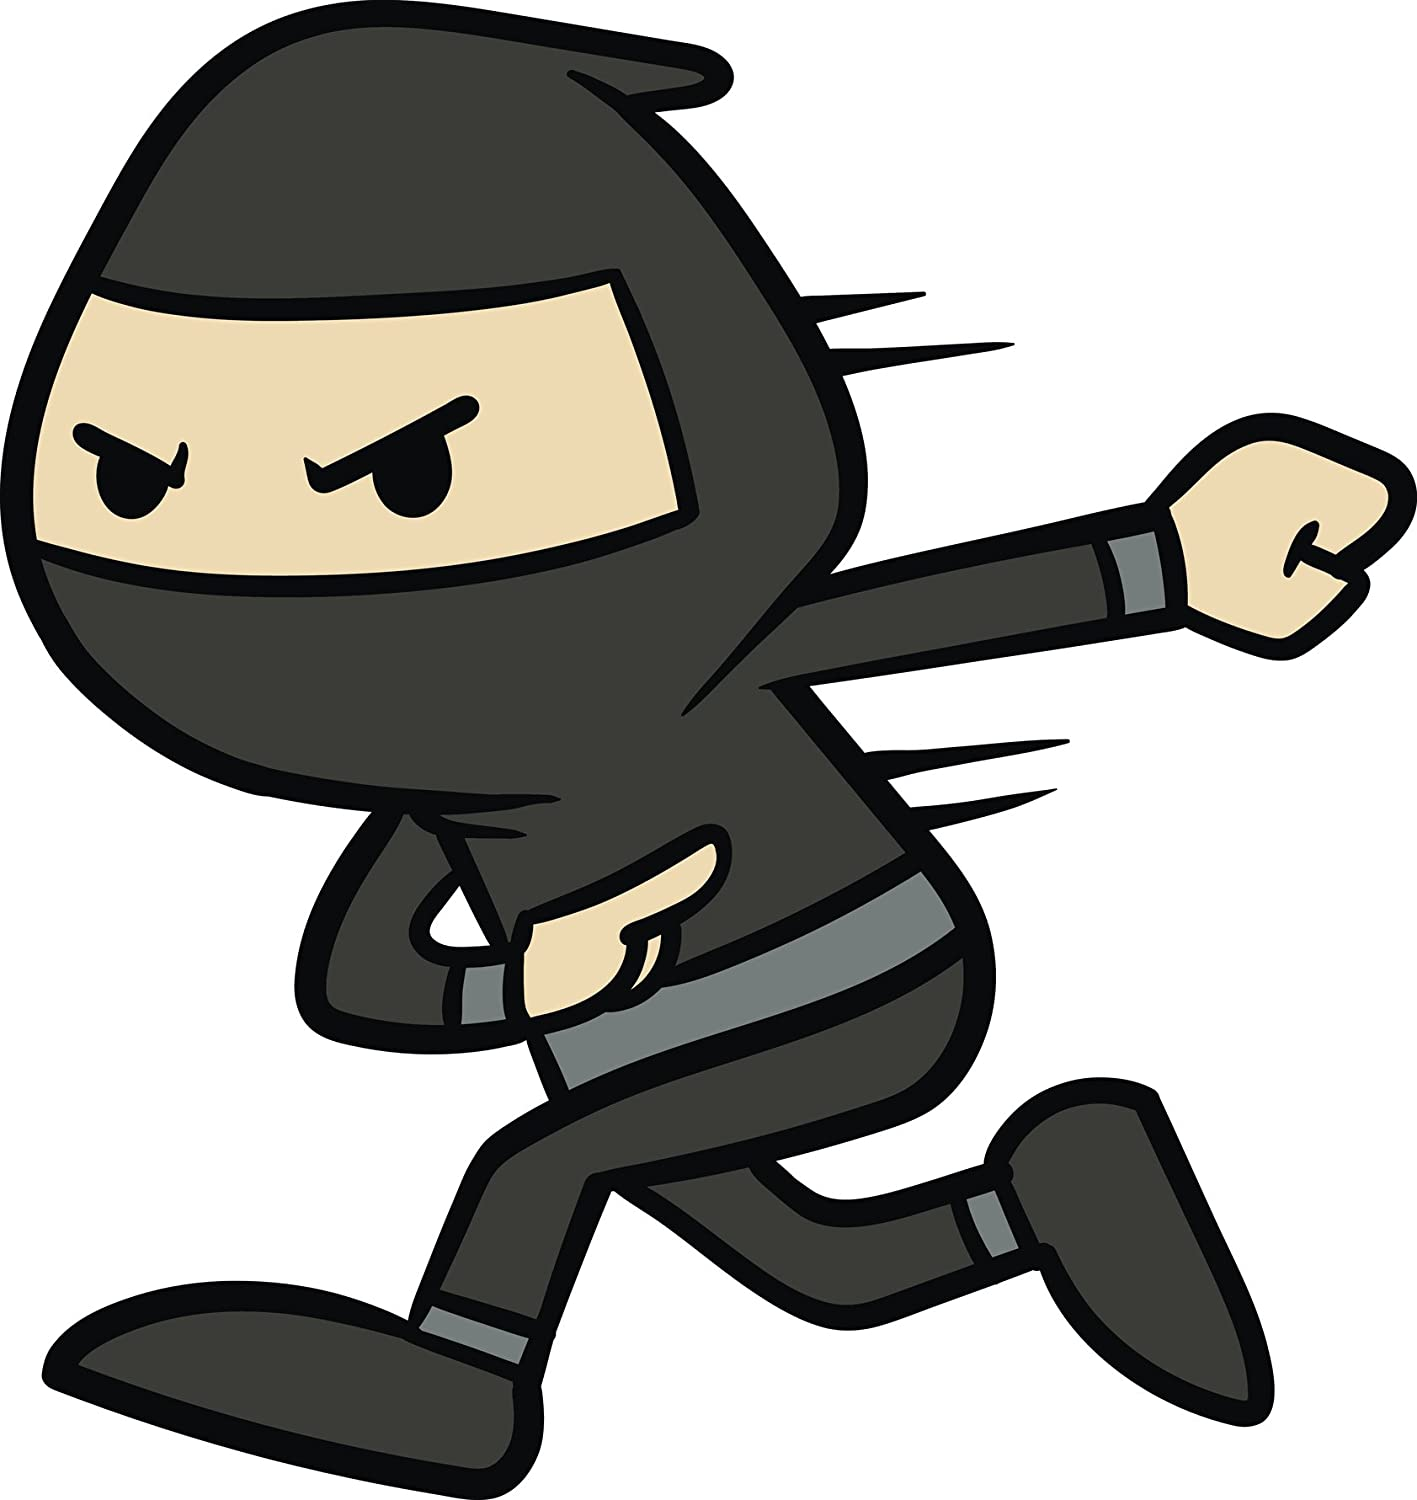 Amazon.com: Swift Speedy Black Ninja Cartoon Emoji Vinyl ...